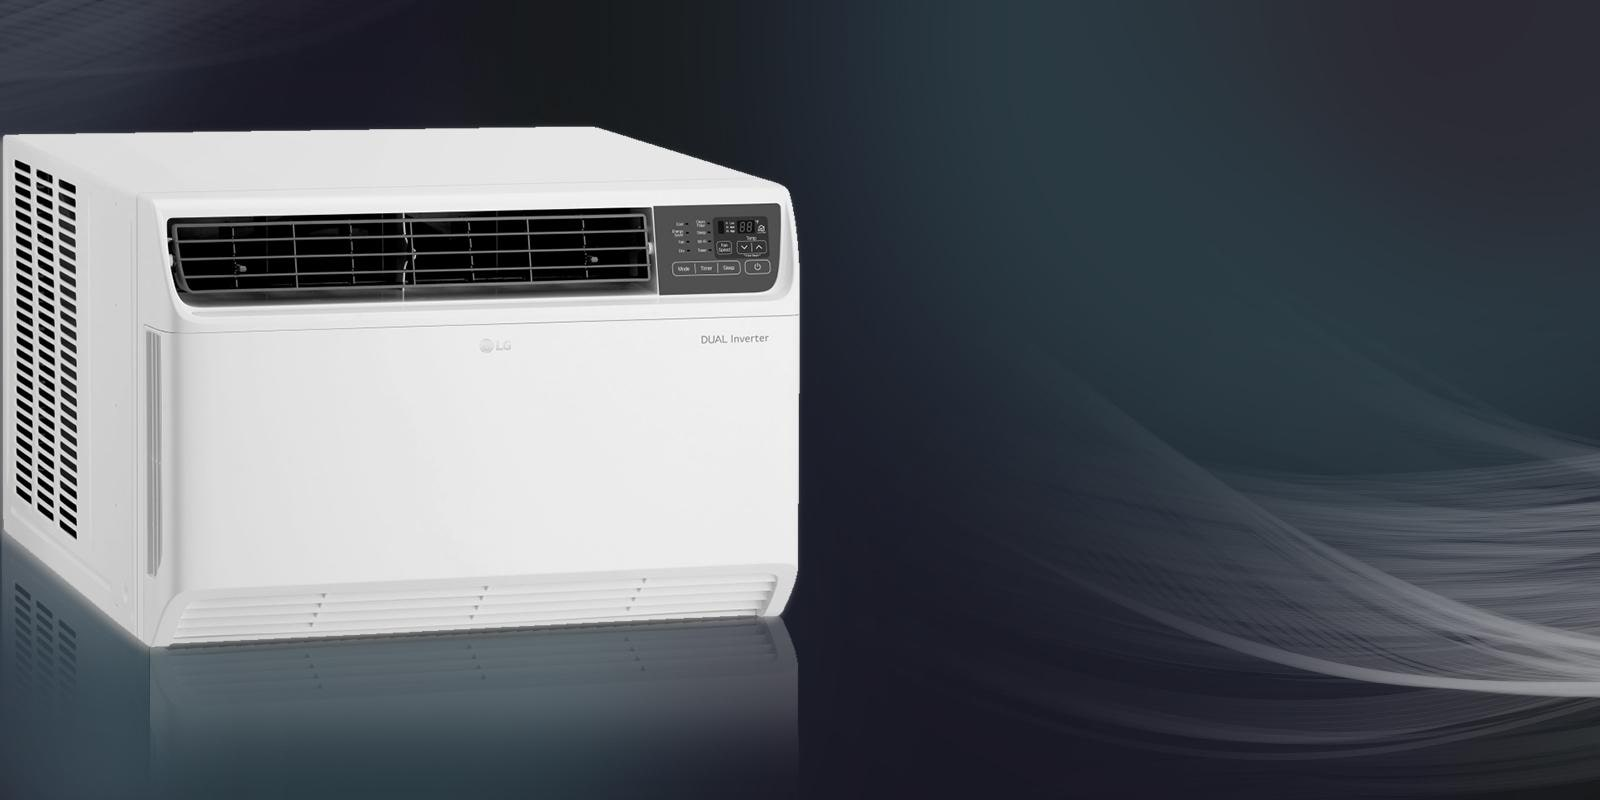 Lg Window Air Conditioner Units Efficient Cooling Usa Conditioning Fridge Hvac Programmable Thermostat Wiring Stay Cool And In Control Powerful Conditioners